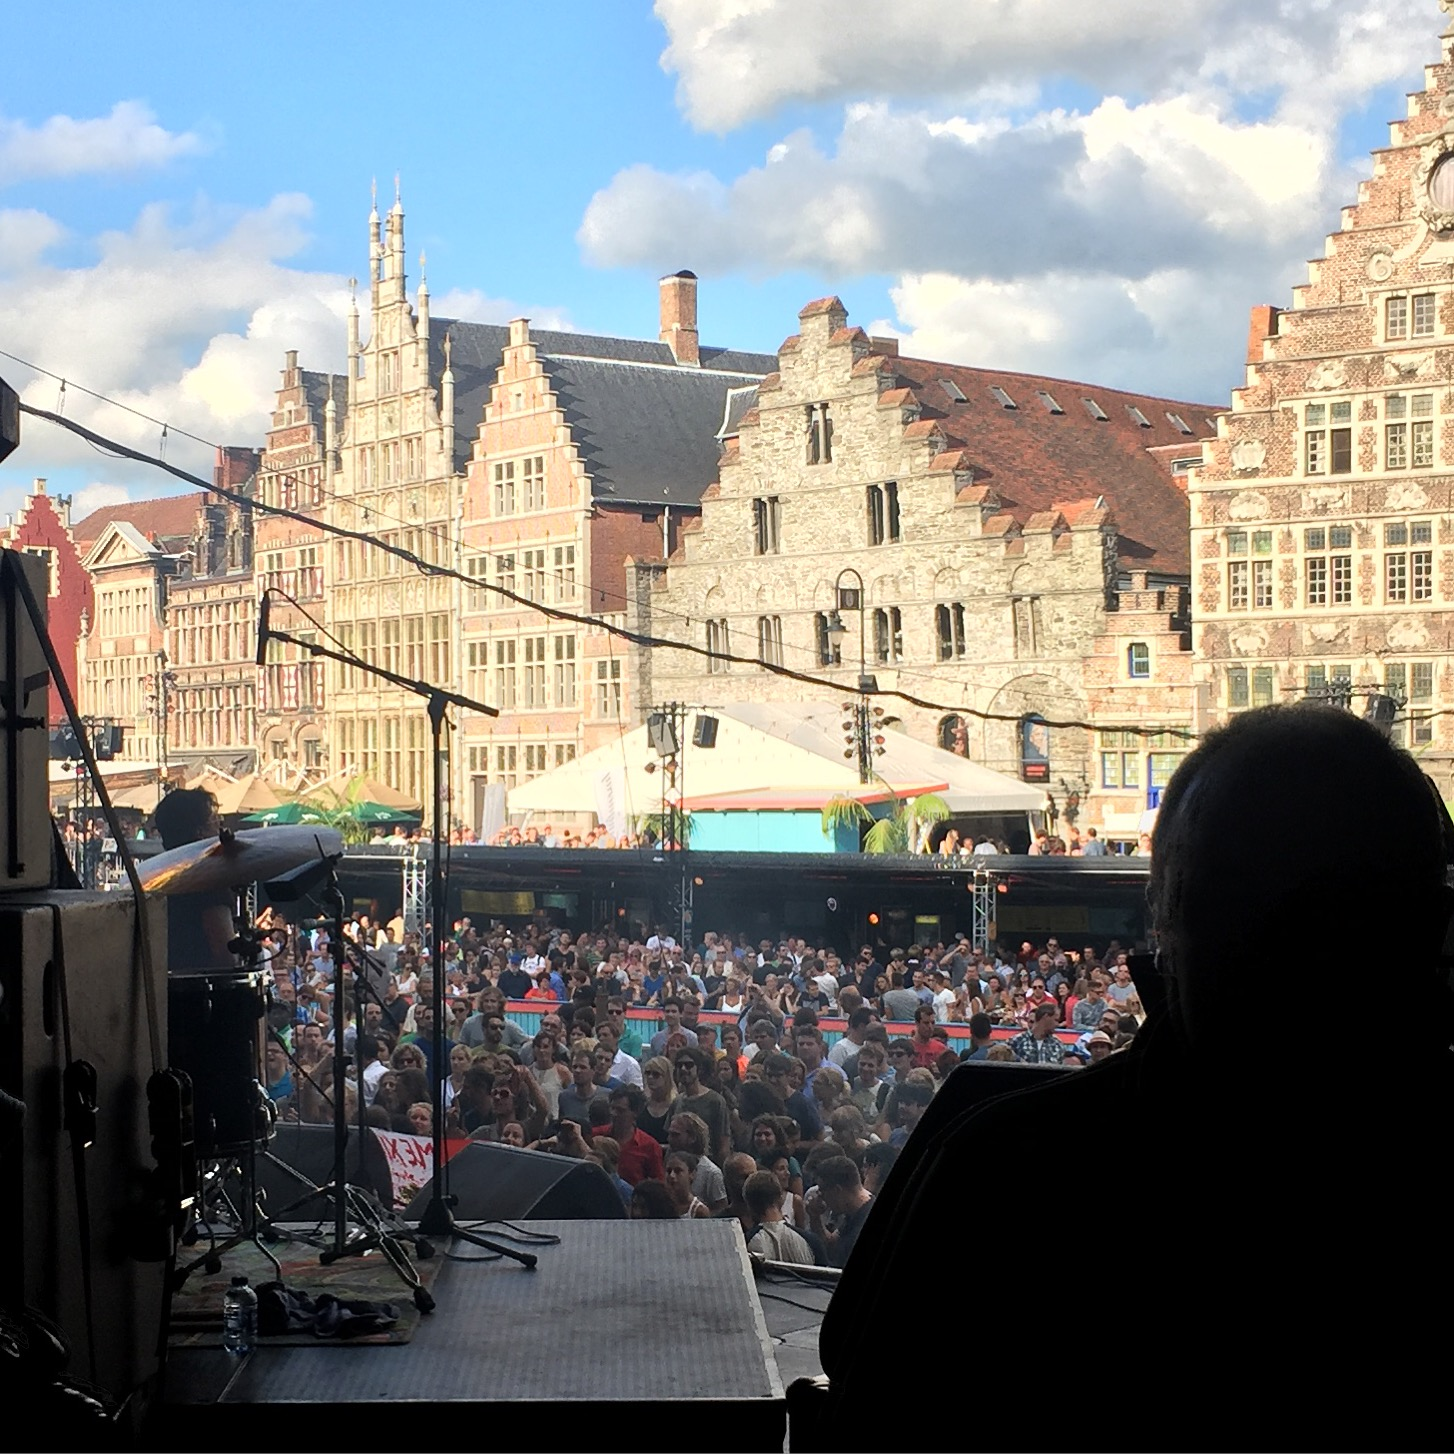 Getting ready to hit the stage at the Pole Pole festival in Ghent, Belgium